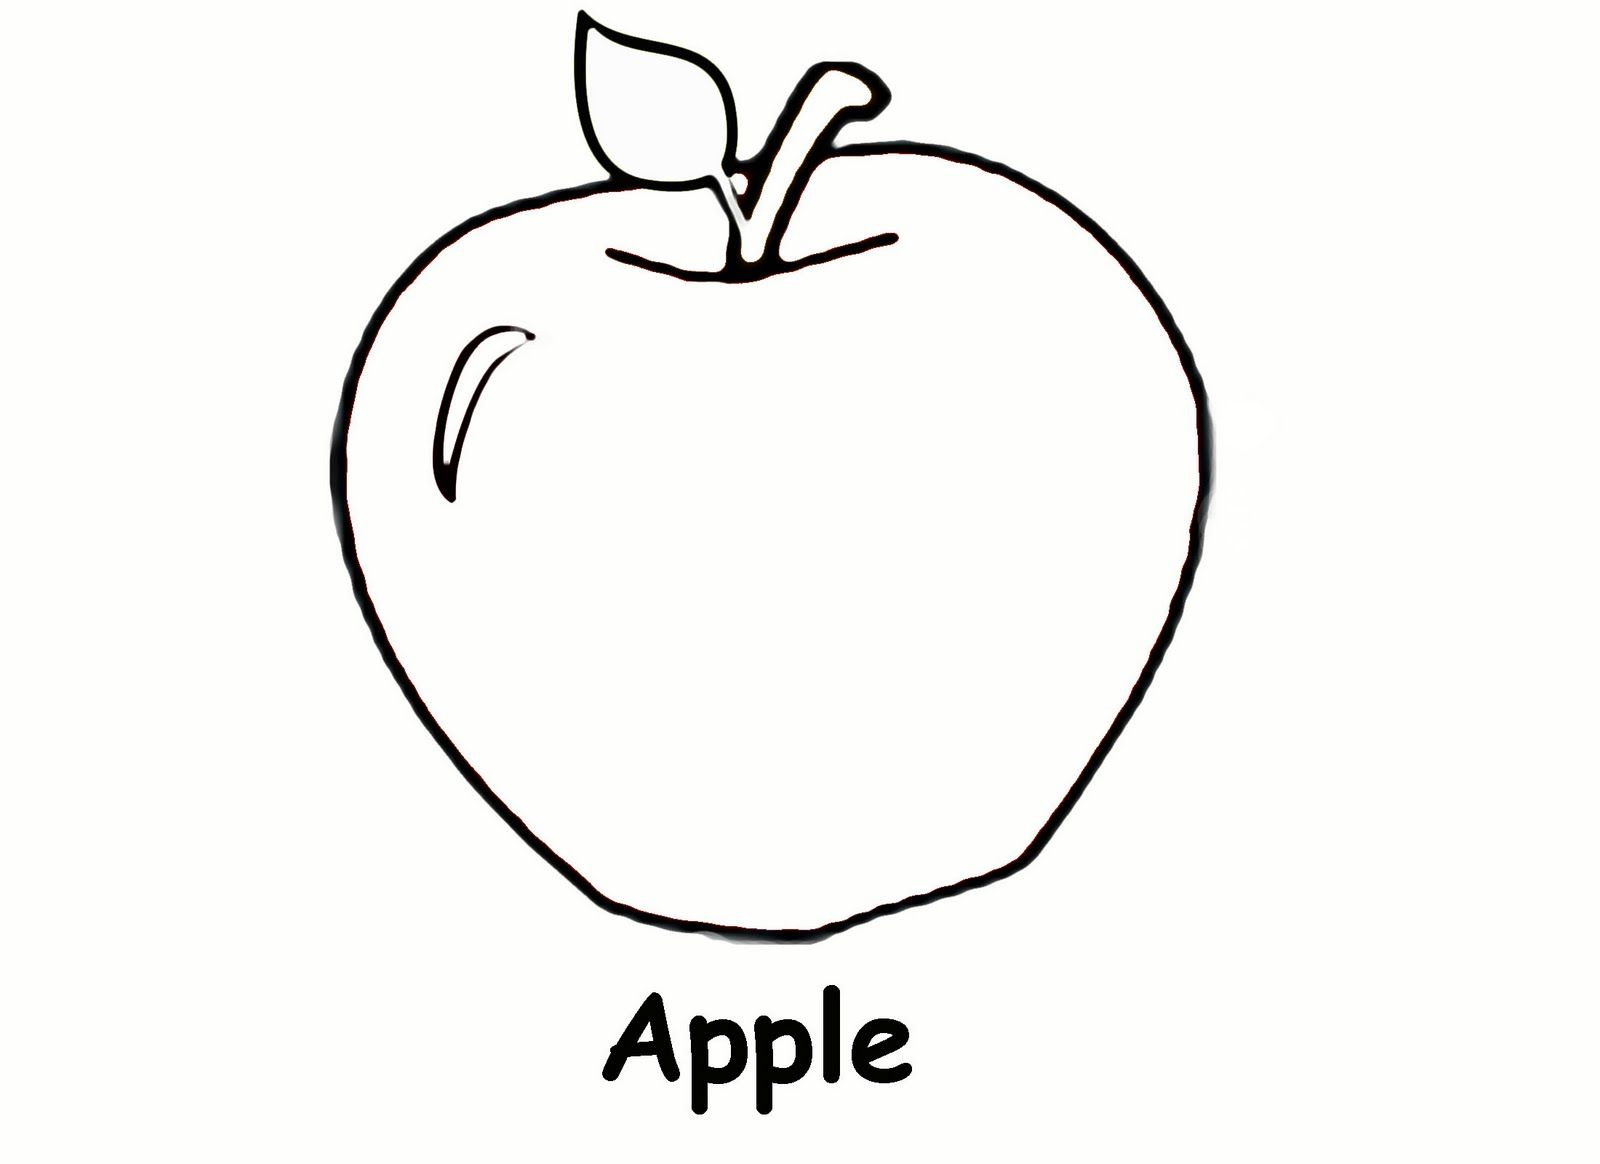 apple coloring pages kids - photo#8